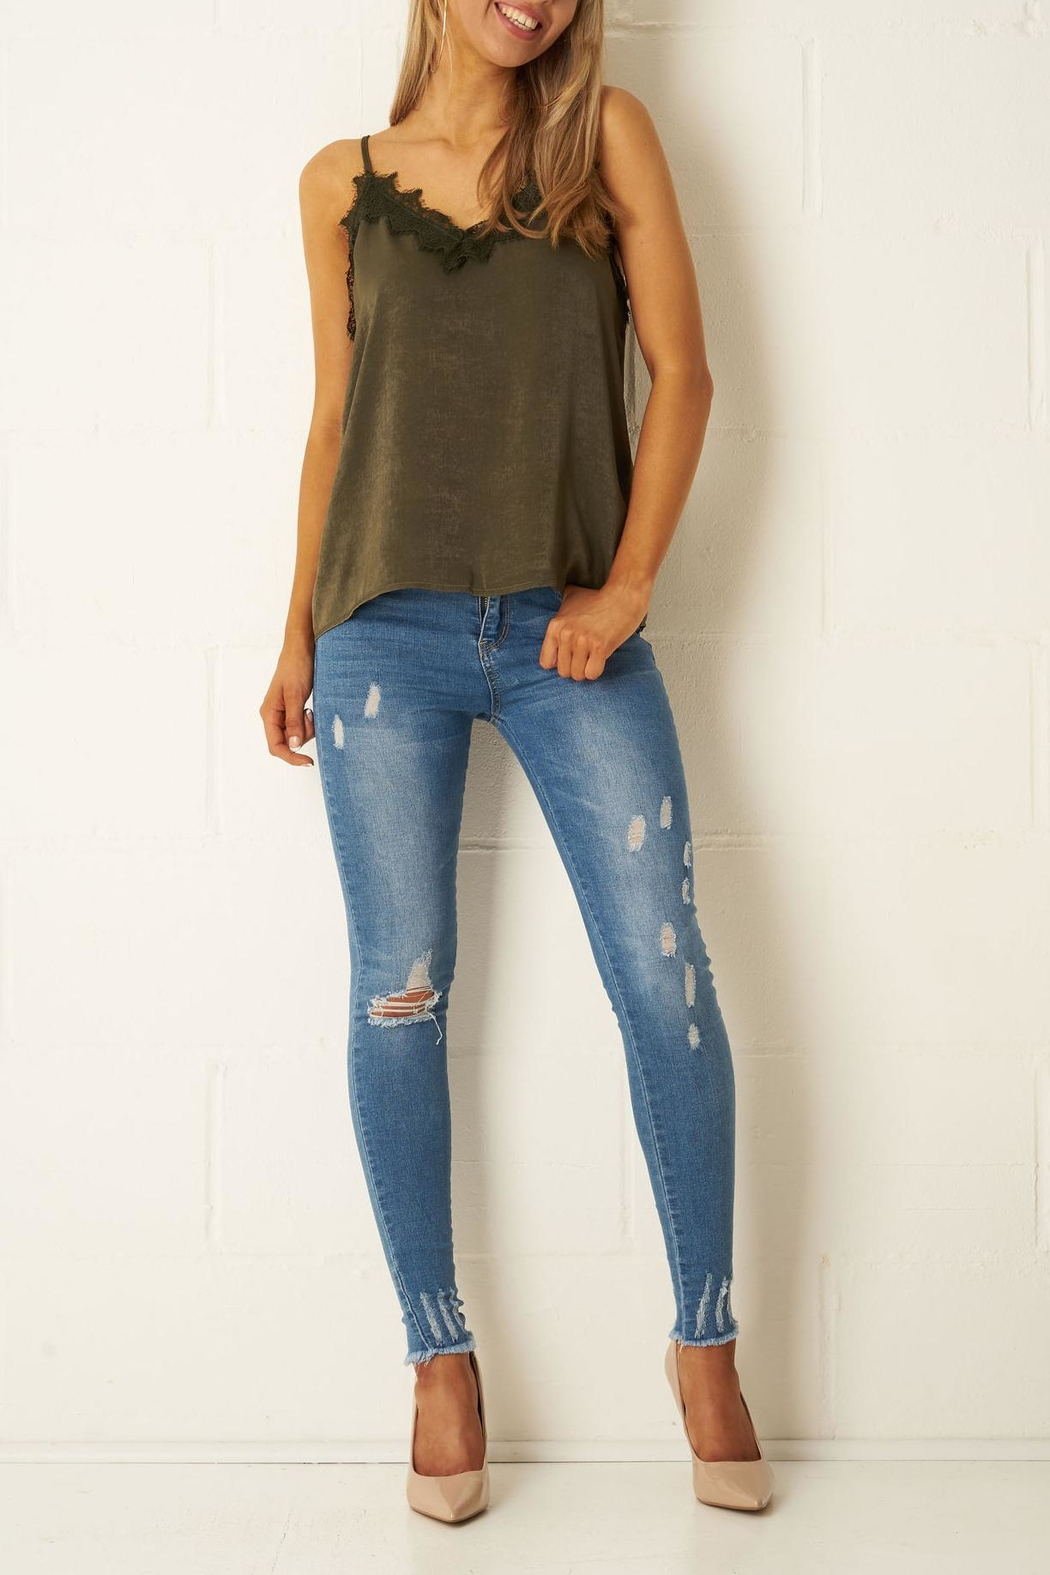 frontrow Khaki Satin-Lace Top - Front Full Image